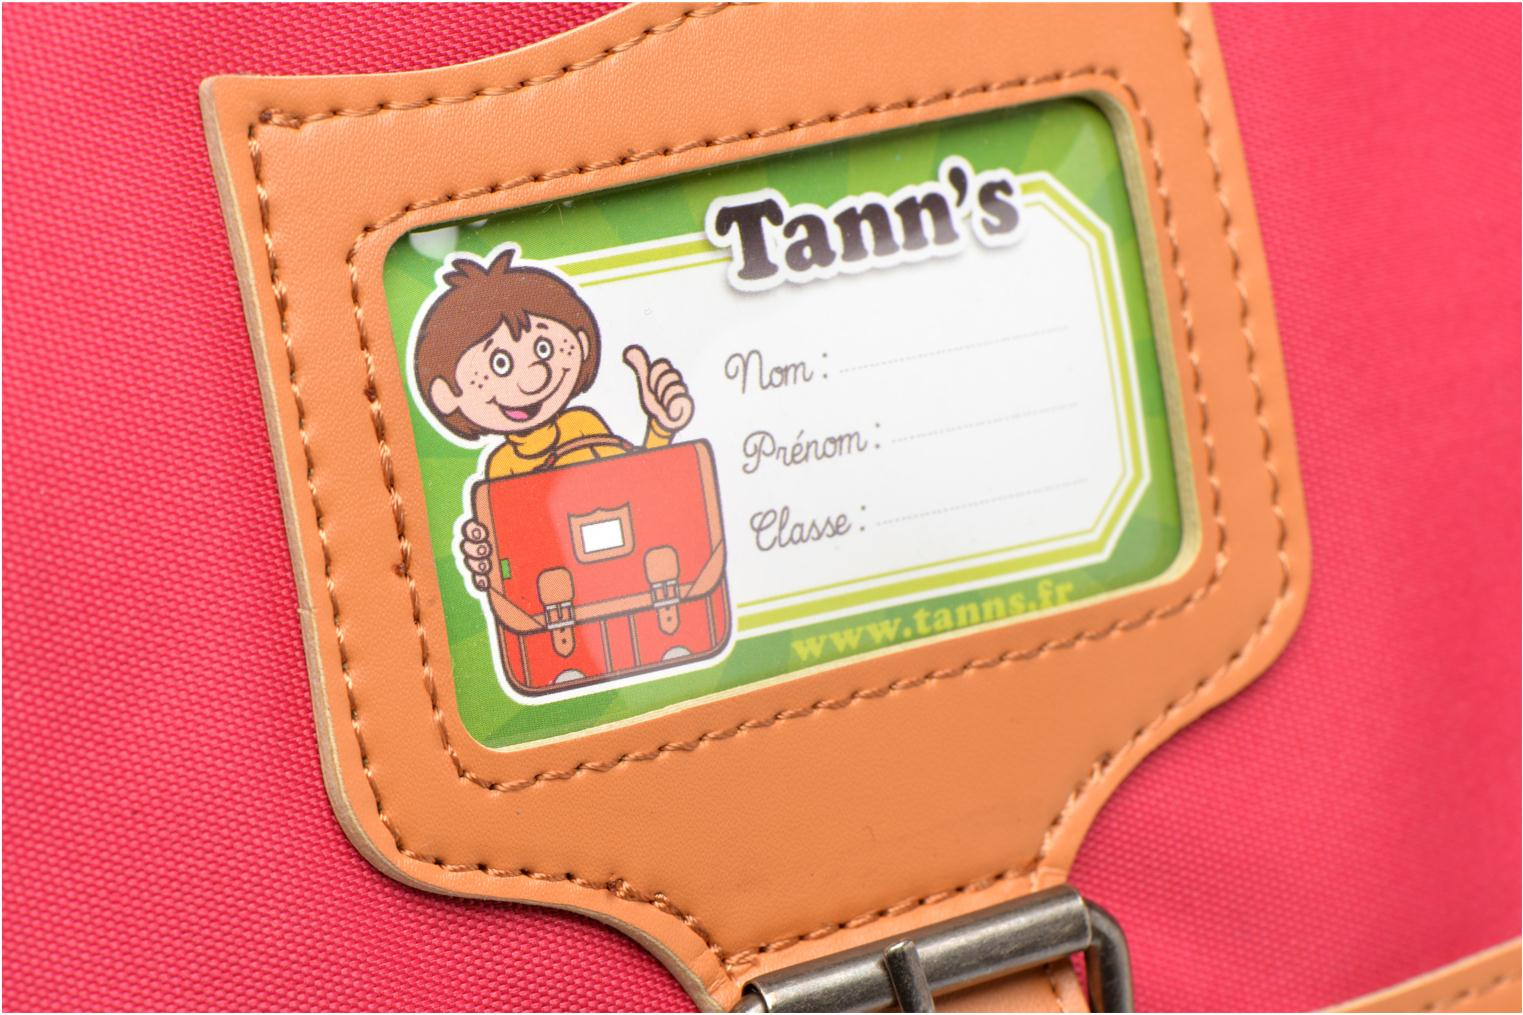 School bags Tann's Cartable 38 cm CLASSIC Pink view from the left